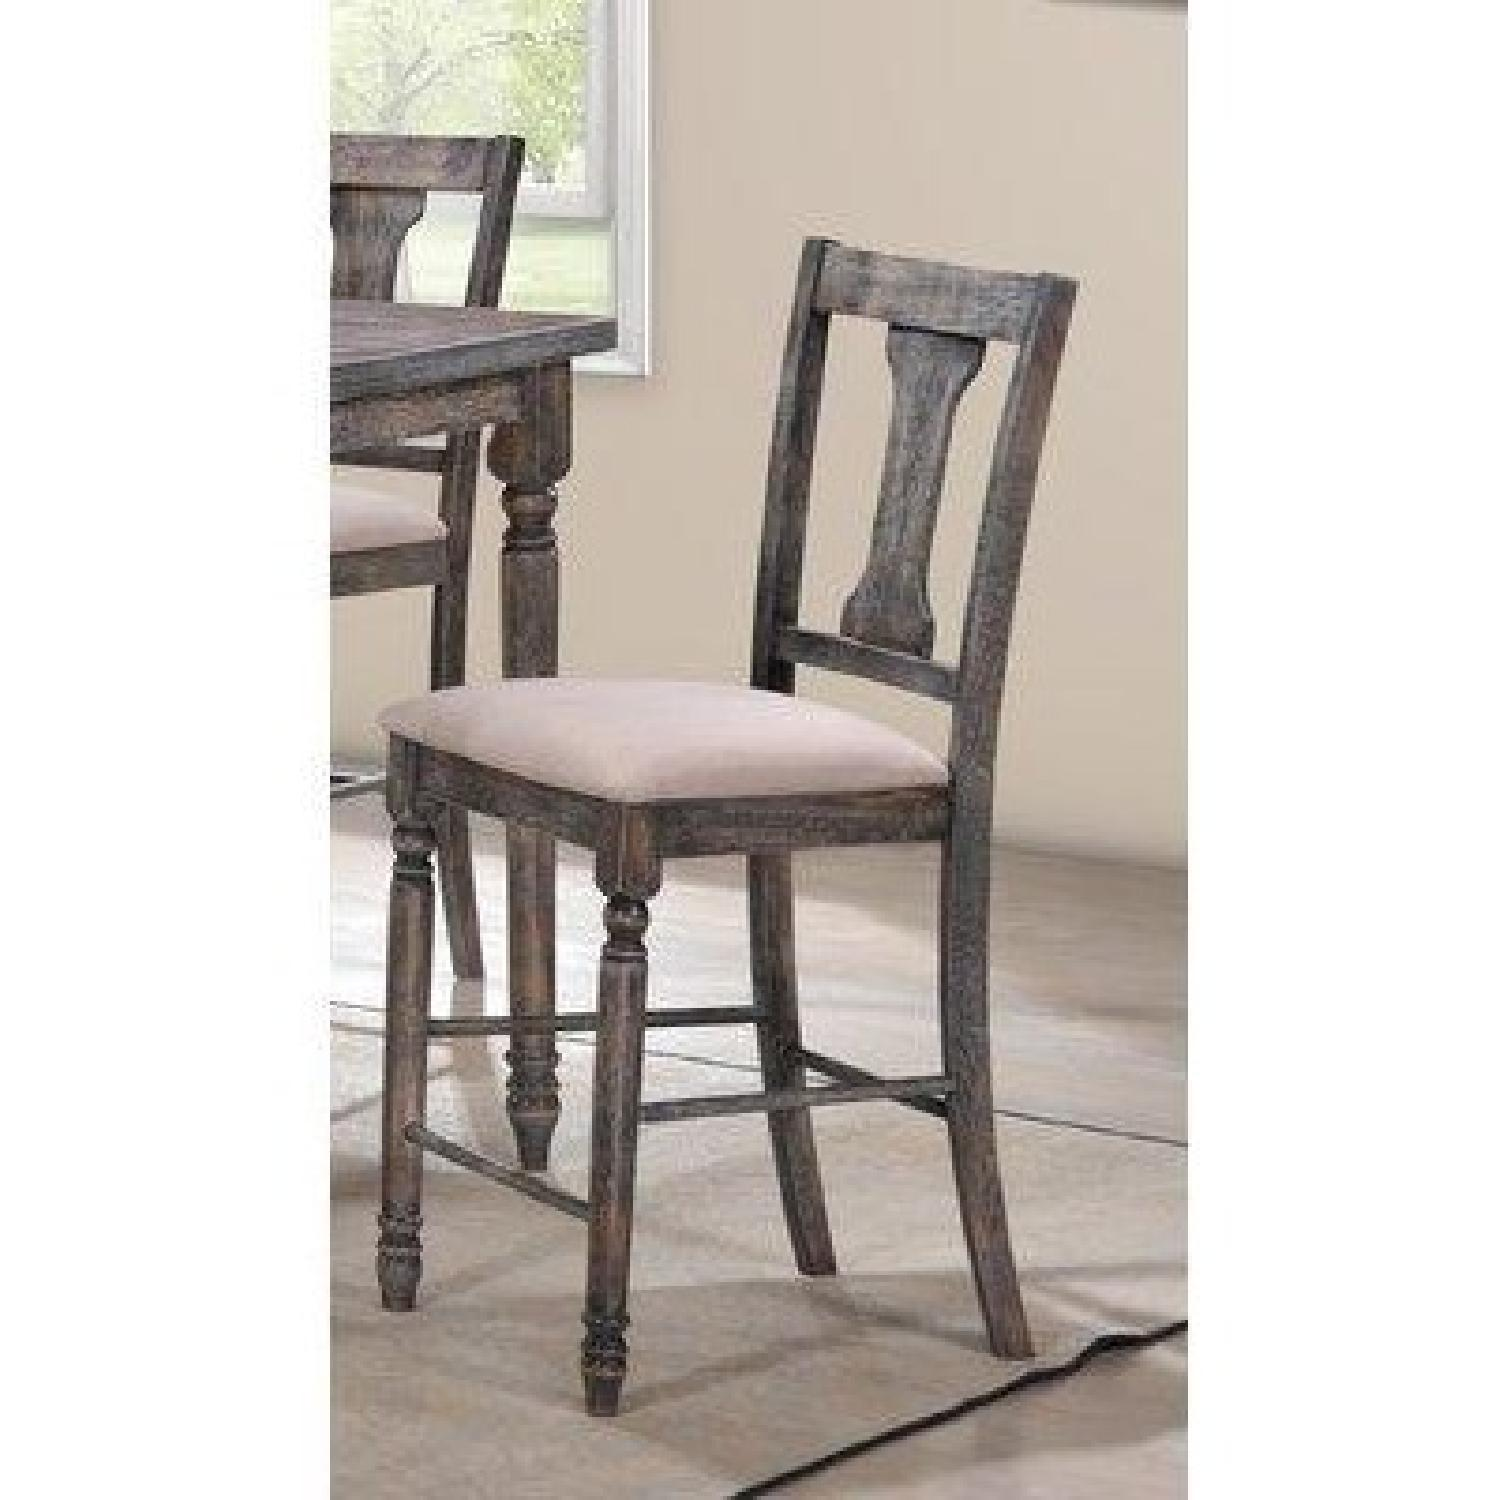 Three Posts Dunwoody Bar Stools - image-1